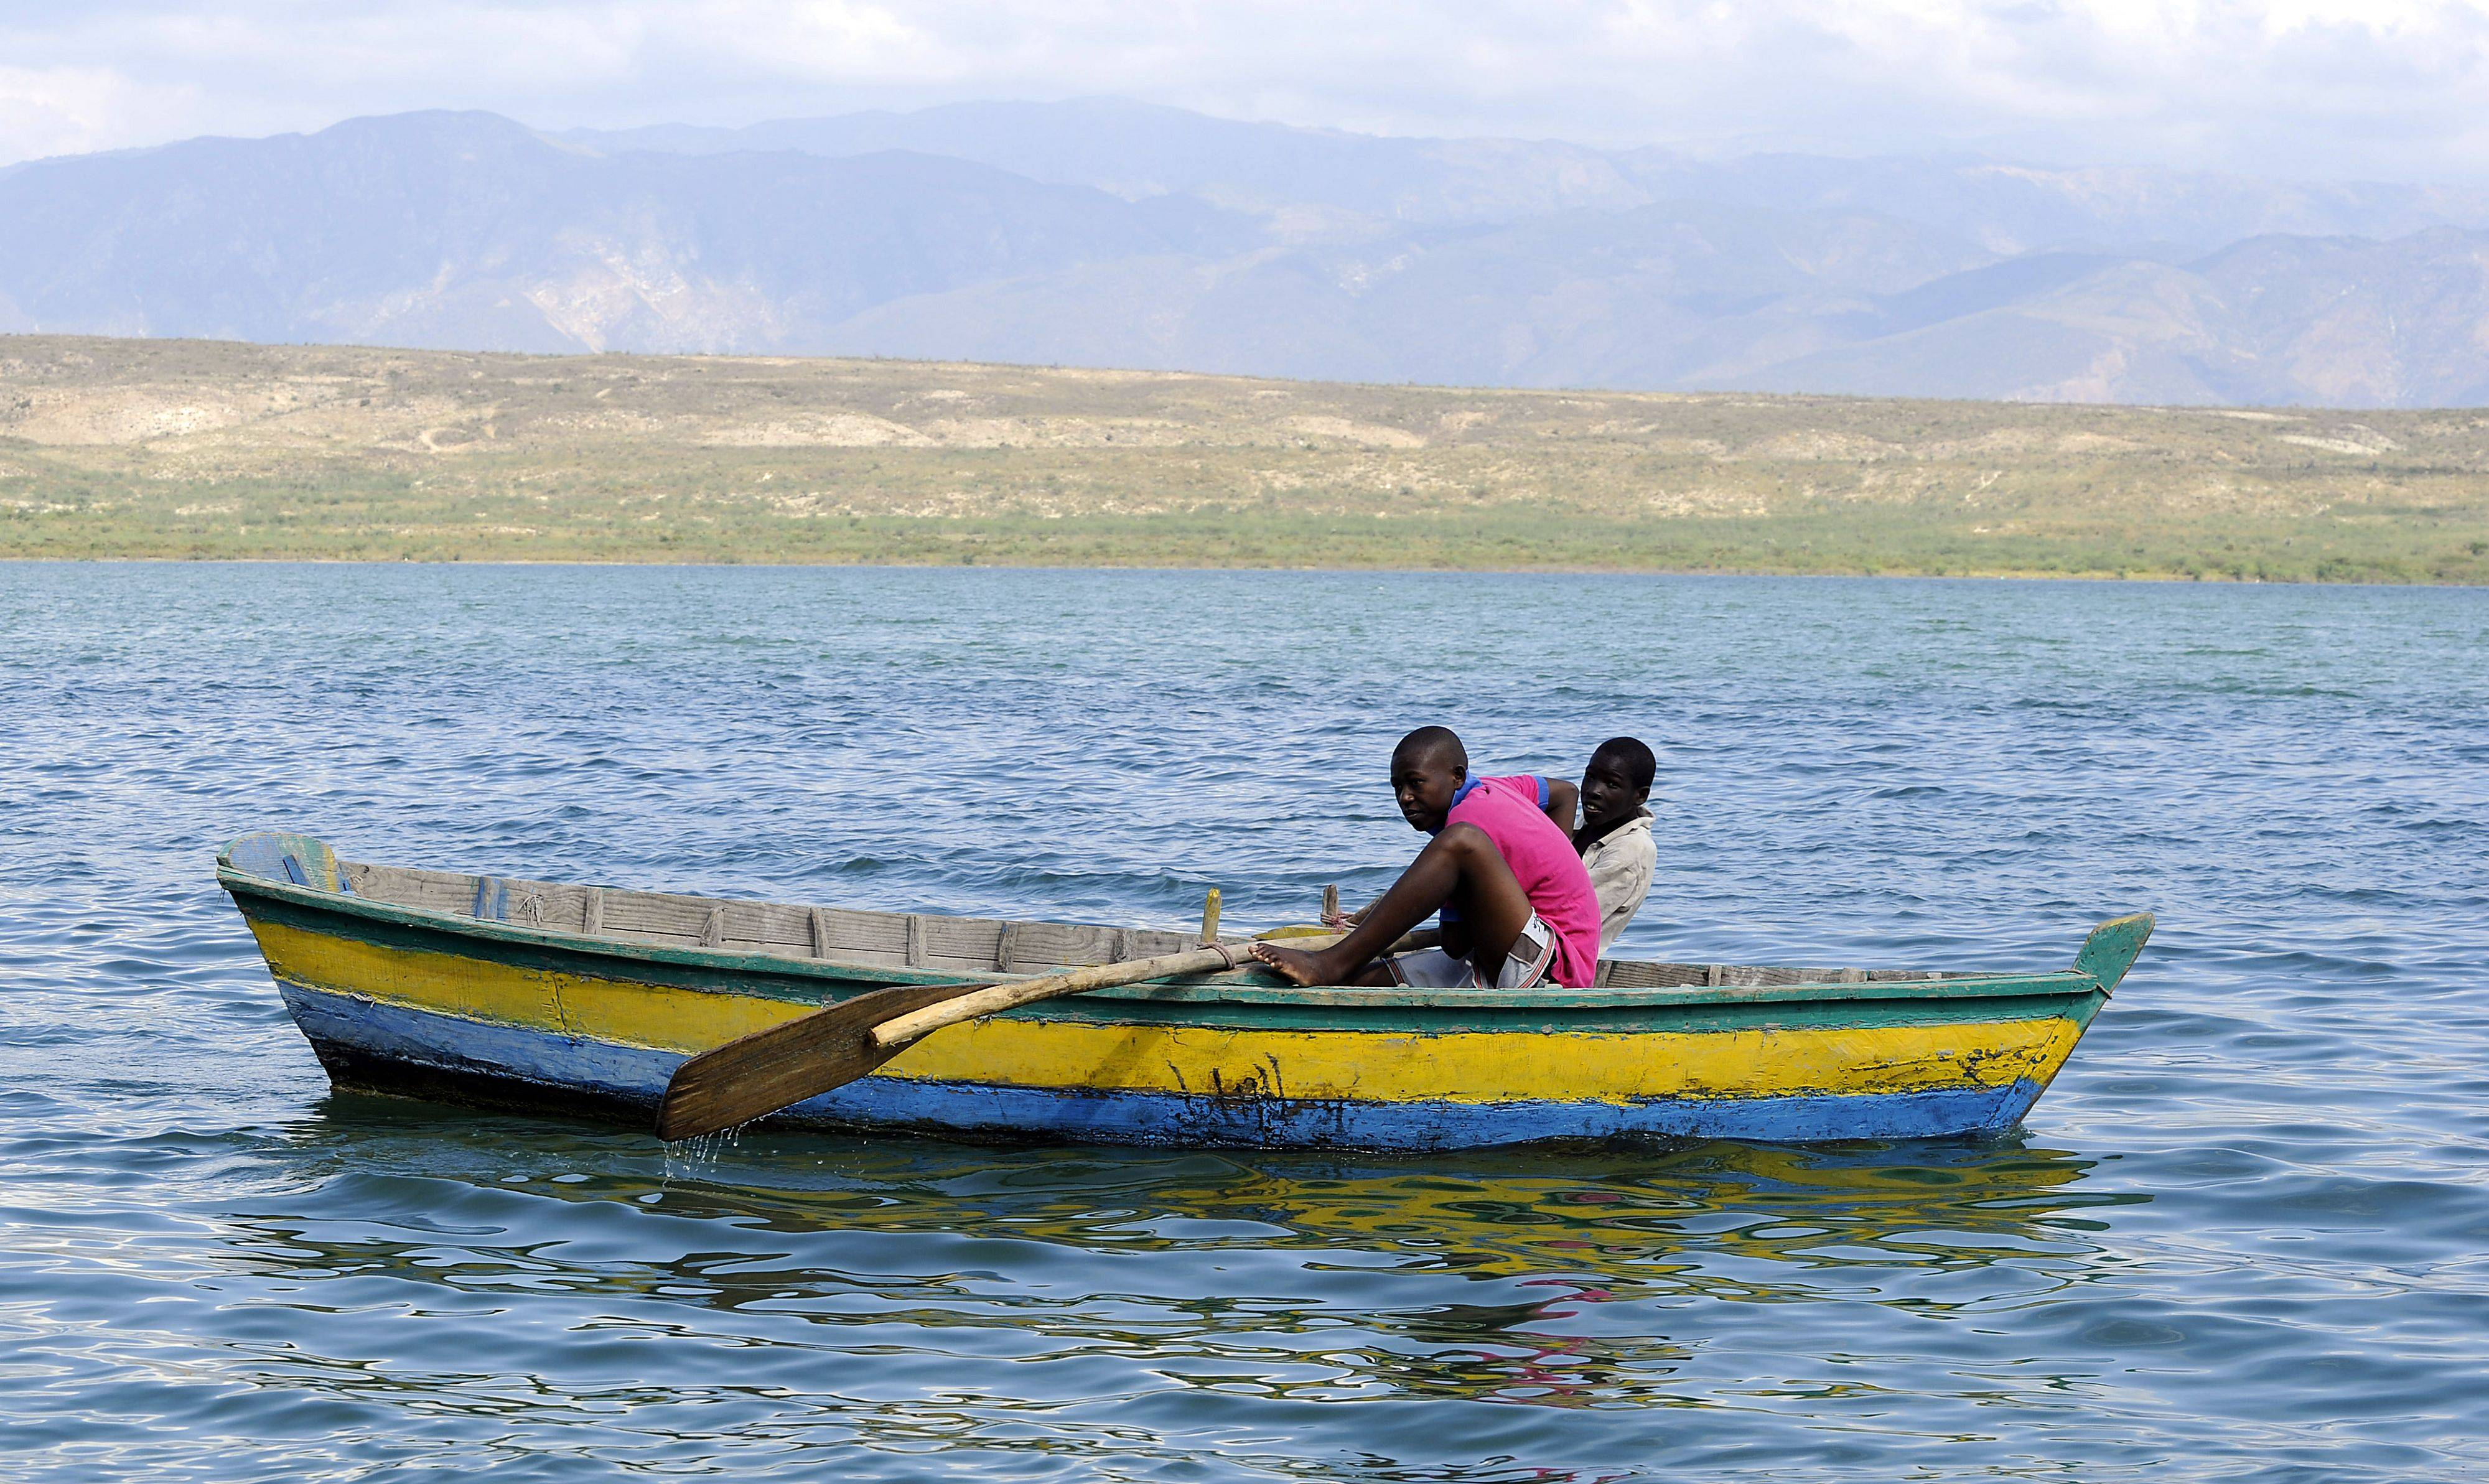 Two boys row near the border of Haiti and the Dominican Republic in a colorful boat.